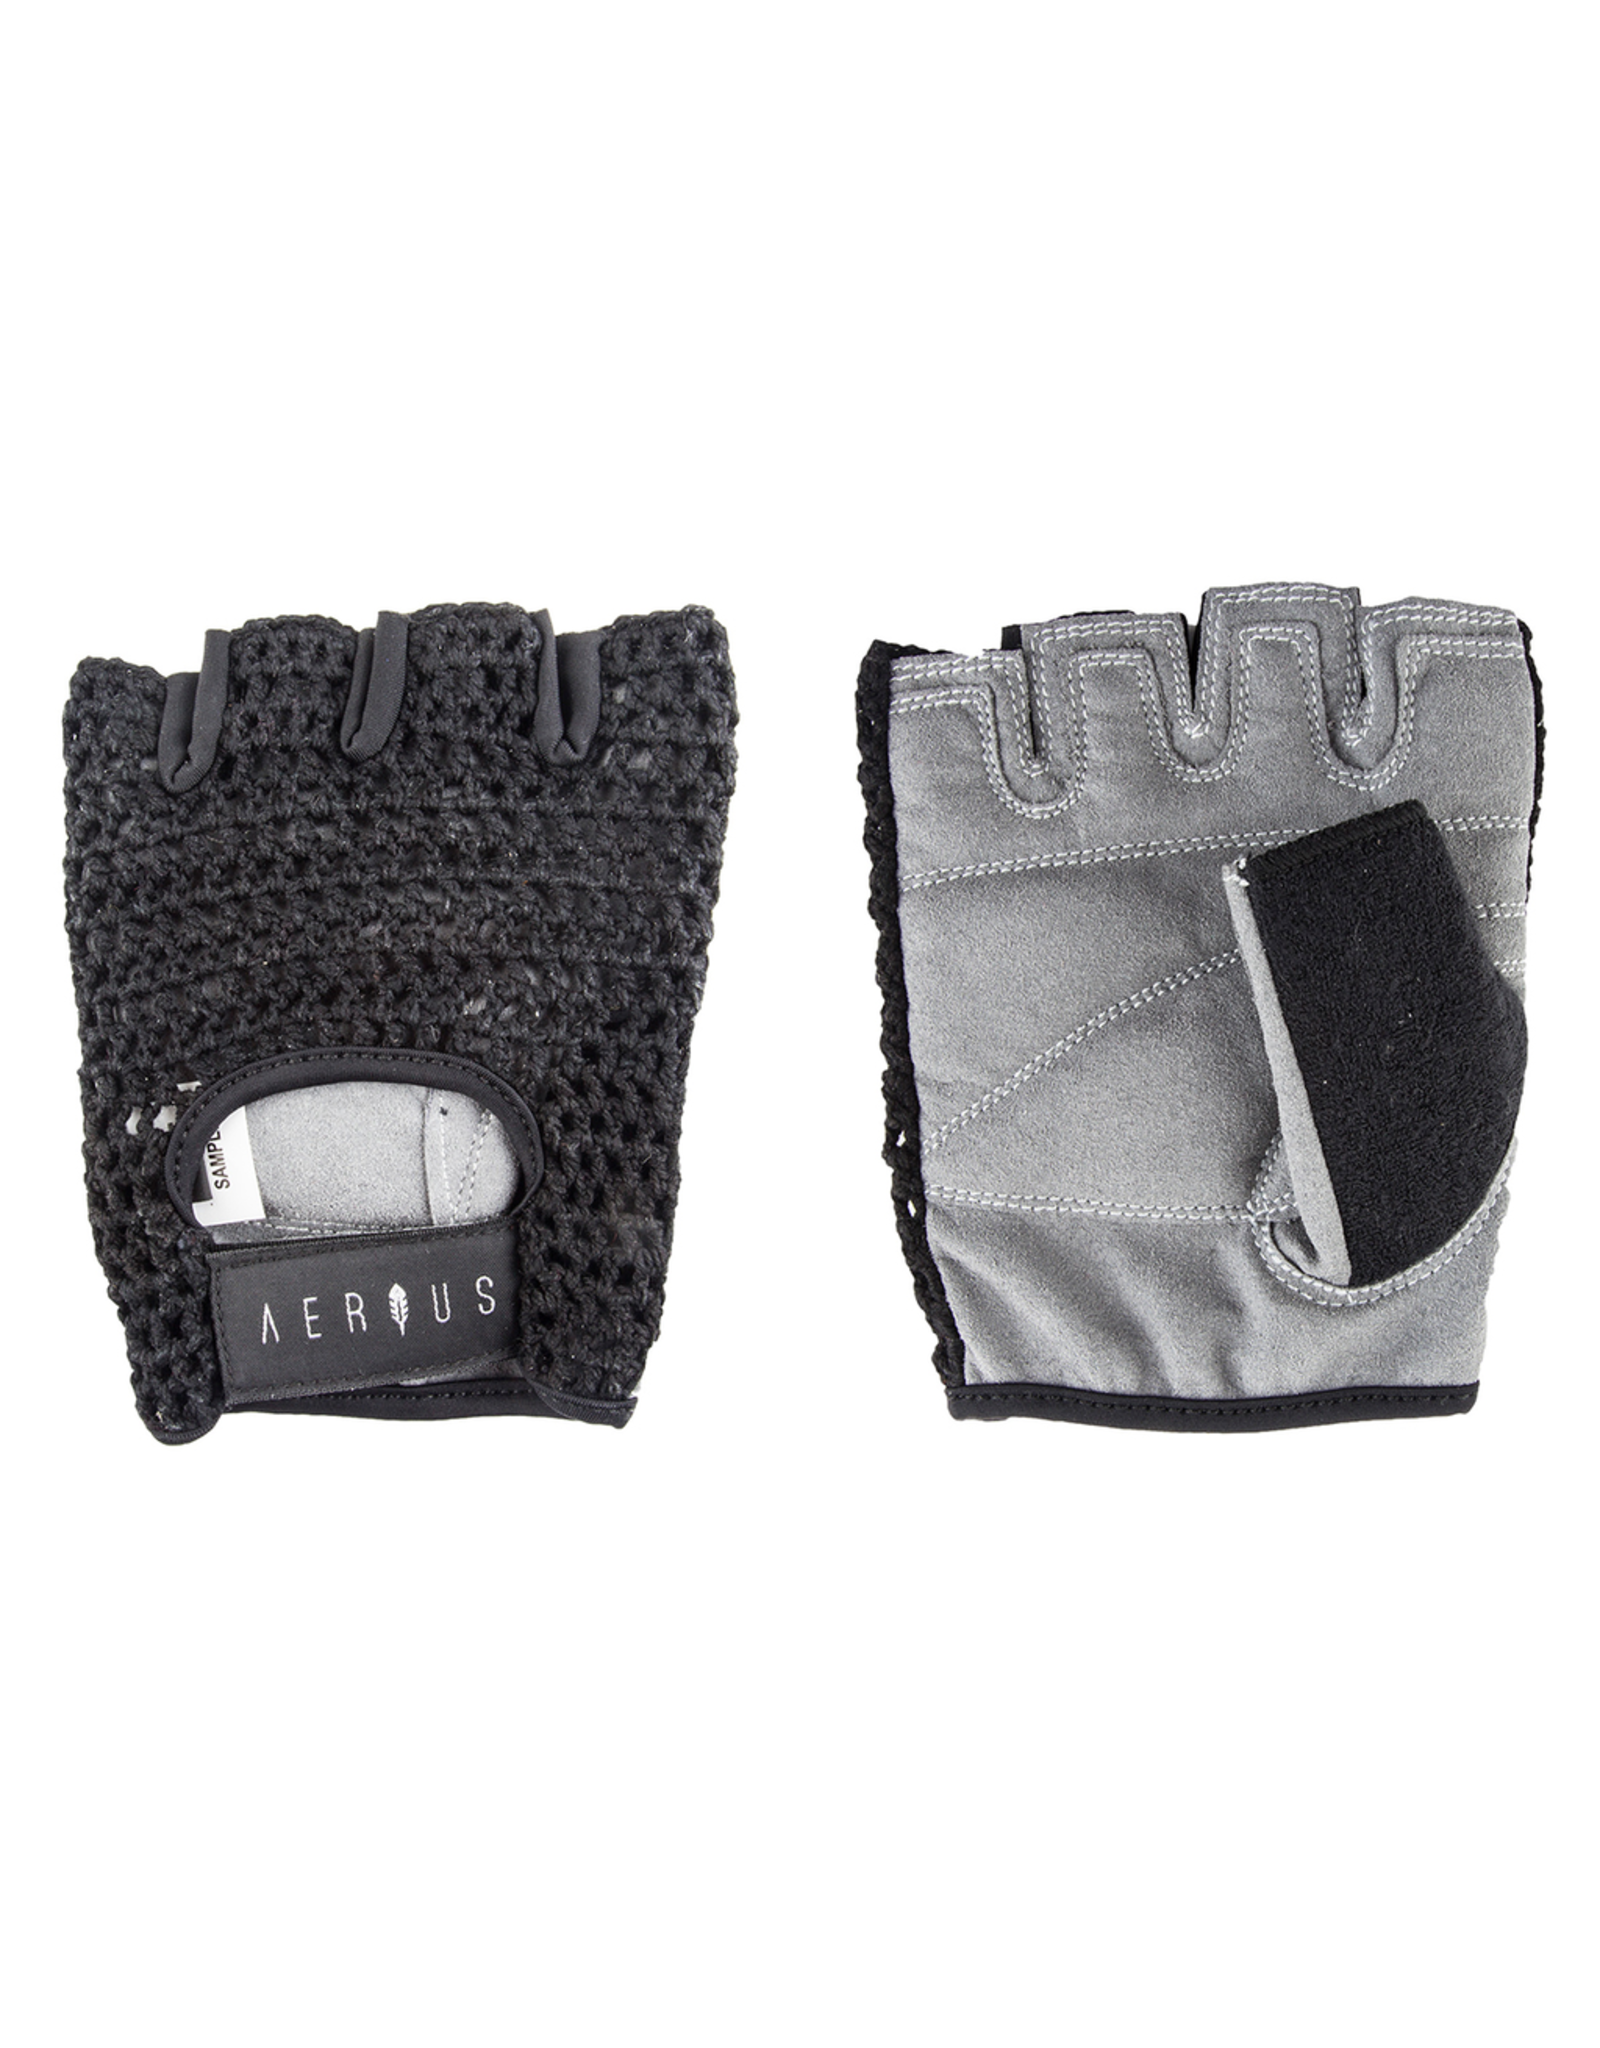 Airius Aerius Retro Mesh Gloves, Small, Black